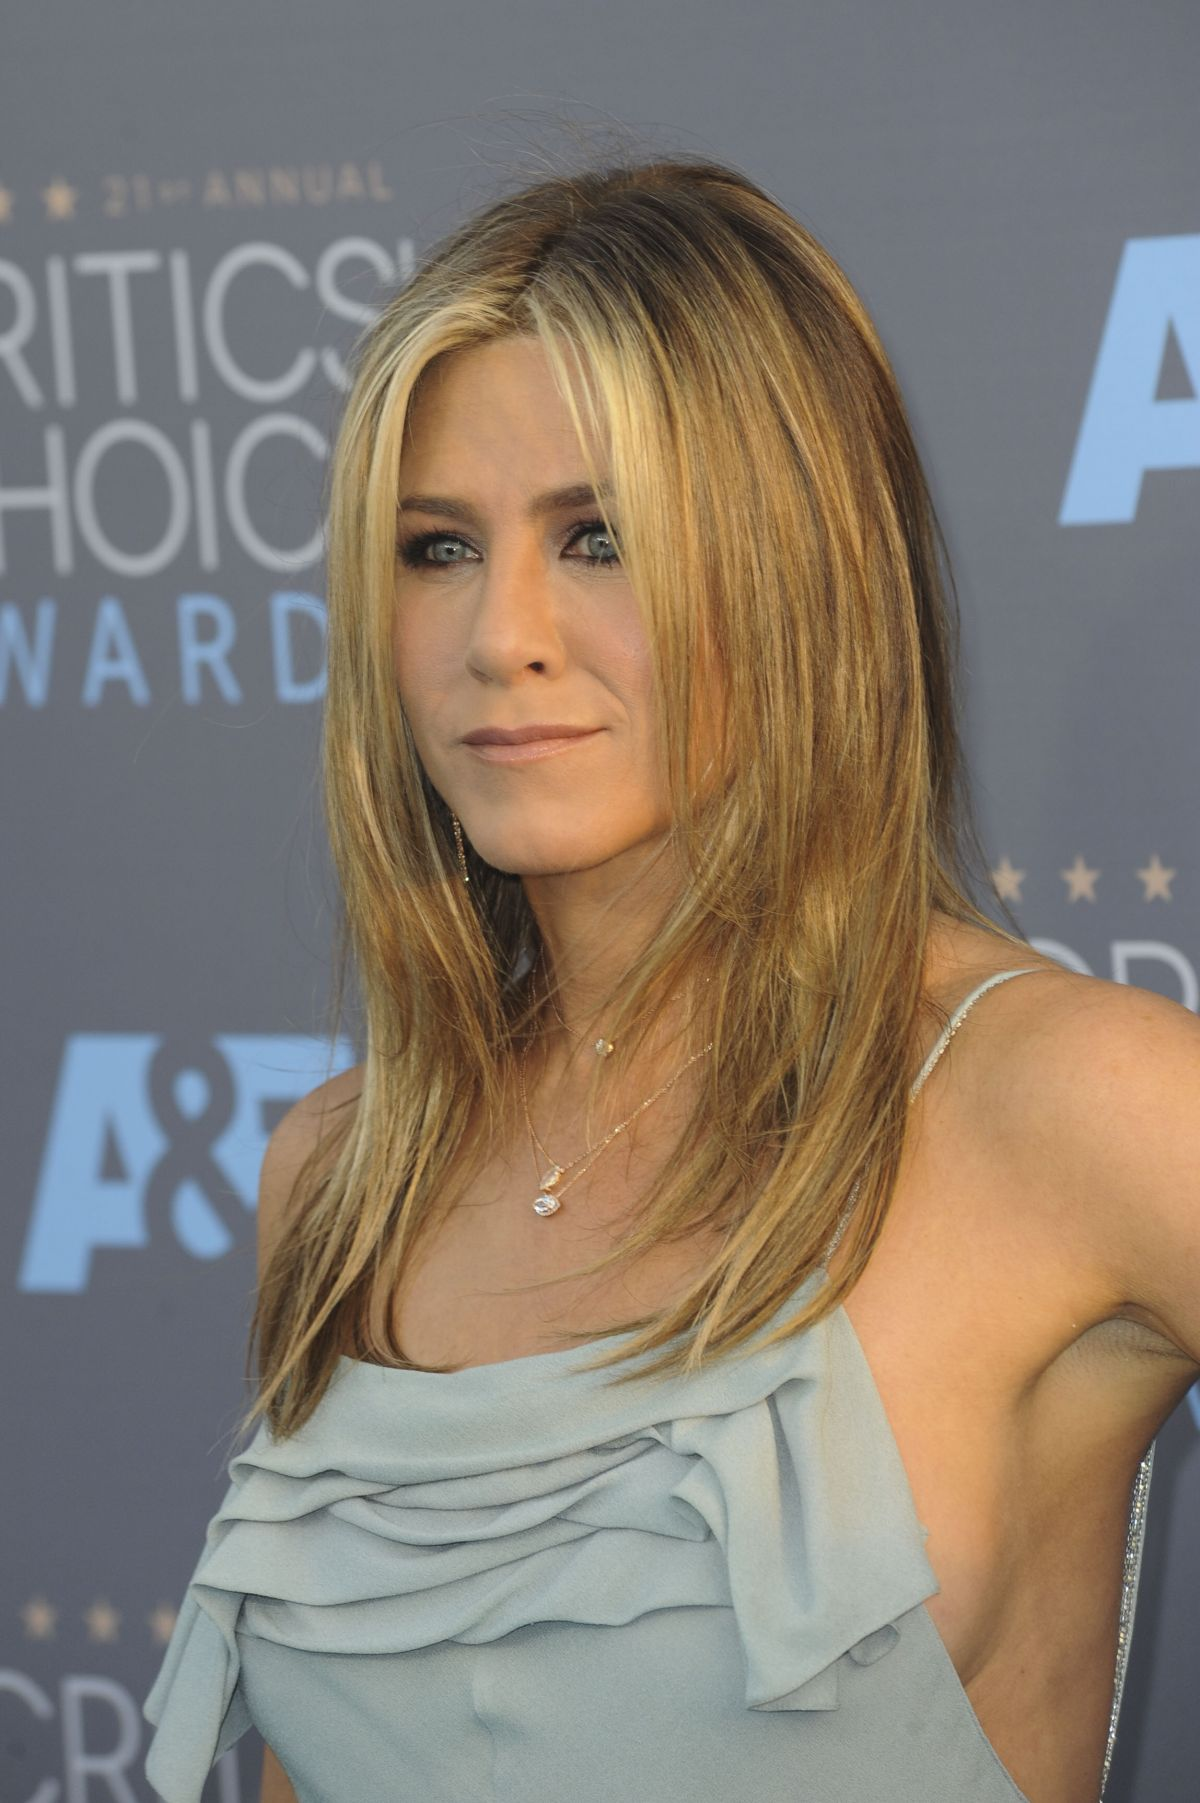 Jennifer Aniston Archives - HawtCelebs - HawtCelebs Jennifer Aniston